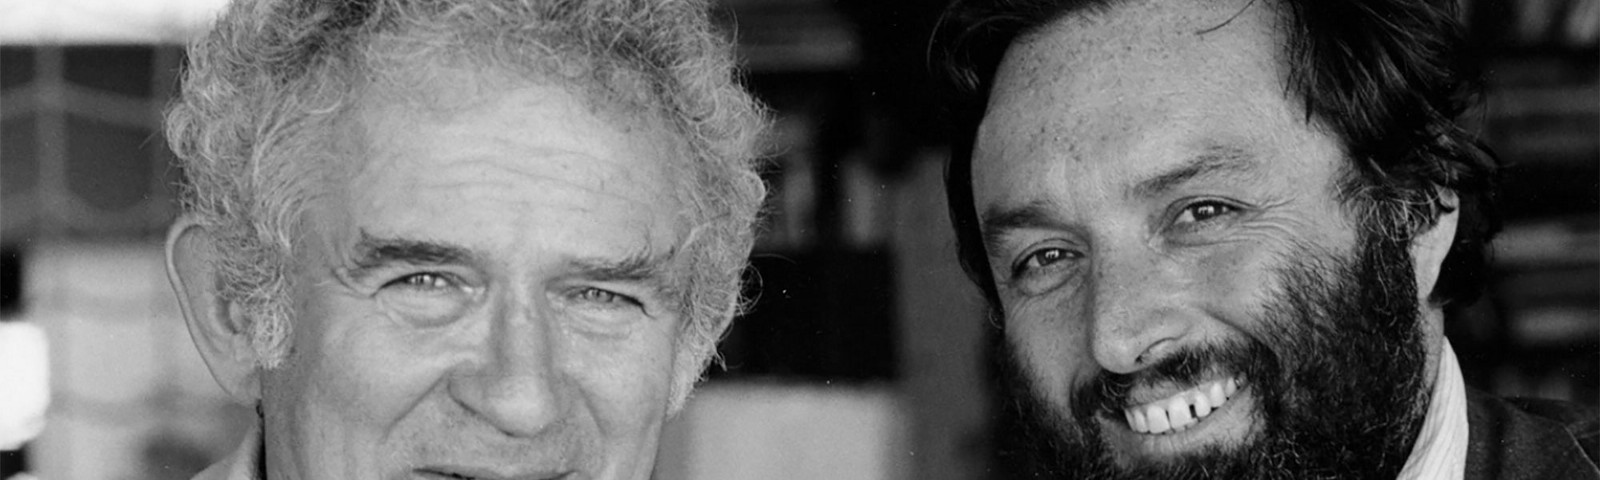 critical essays on norman mailer Get this from a library norman mailer : a collection of critical essays [leo braudy] -- an interview with mailer essays on aspects of his writing career book reviews.